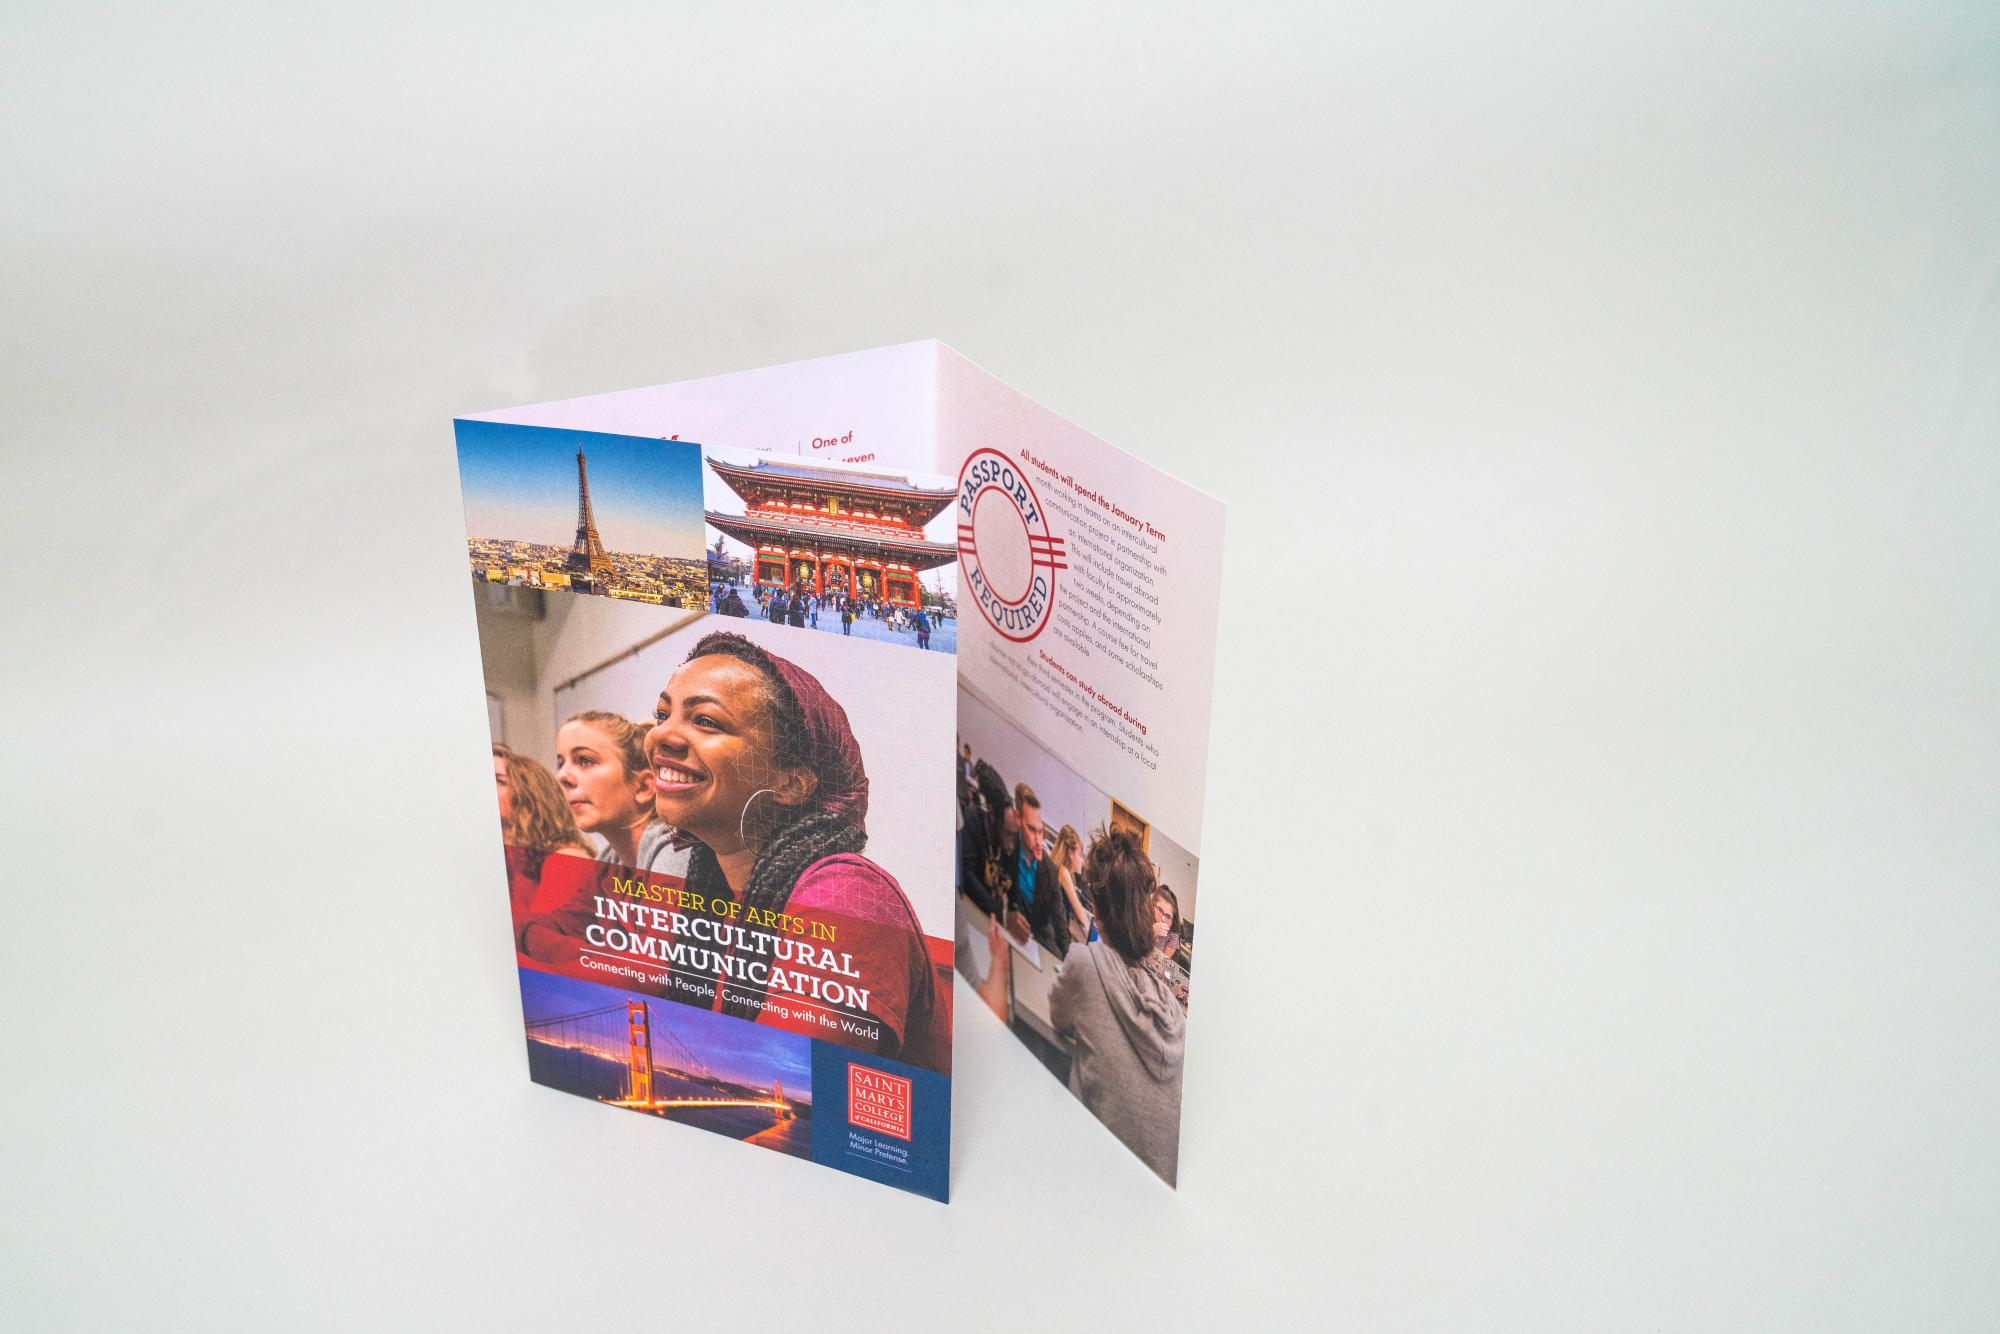 Examples of work produced by College Communications